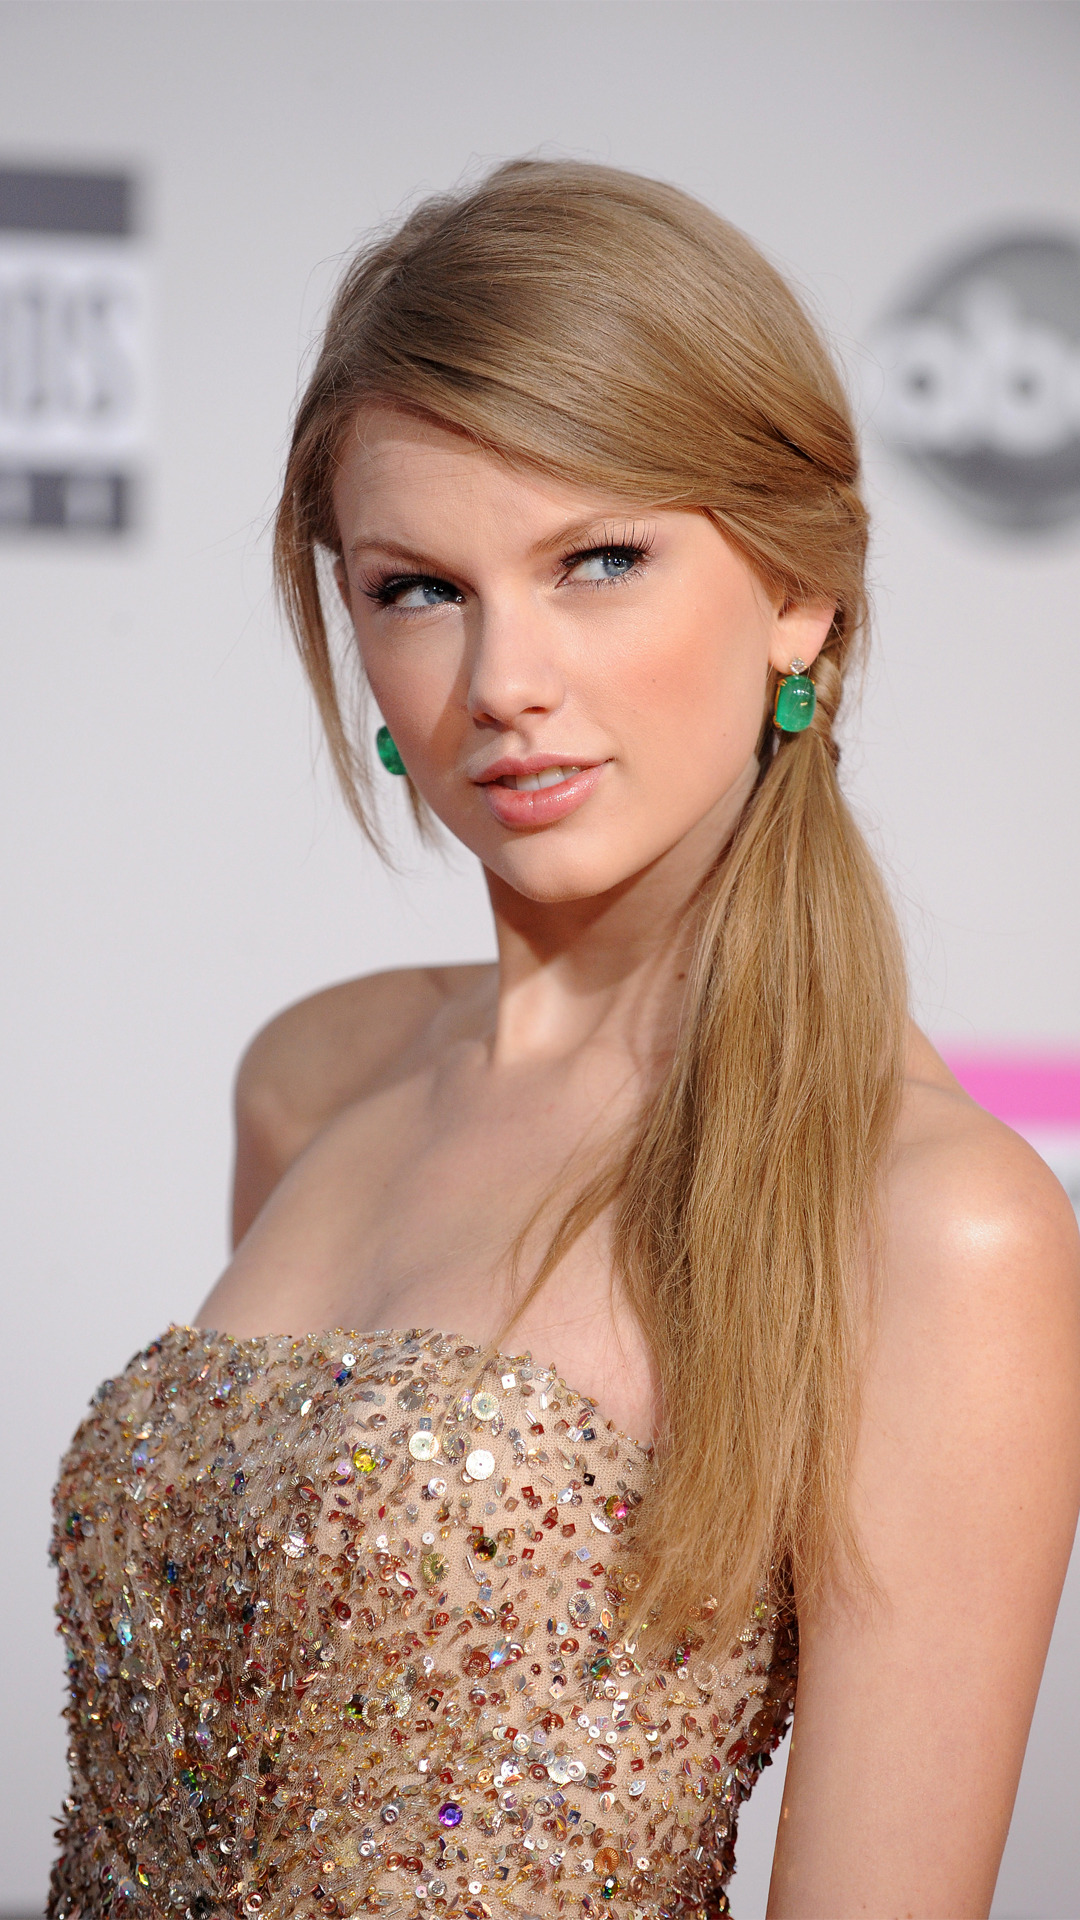 free taylor swift excellent side look background download mobile hd